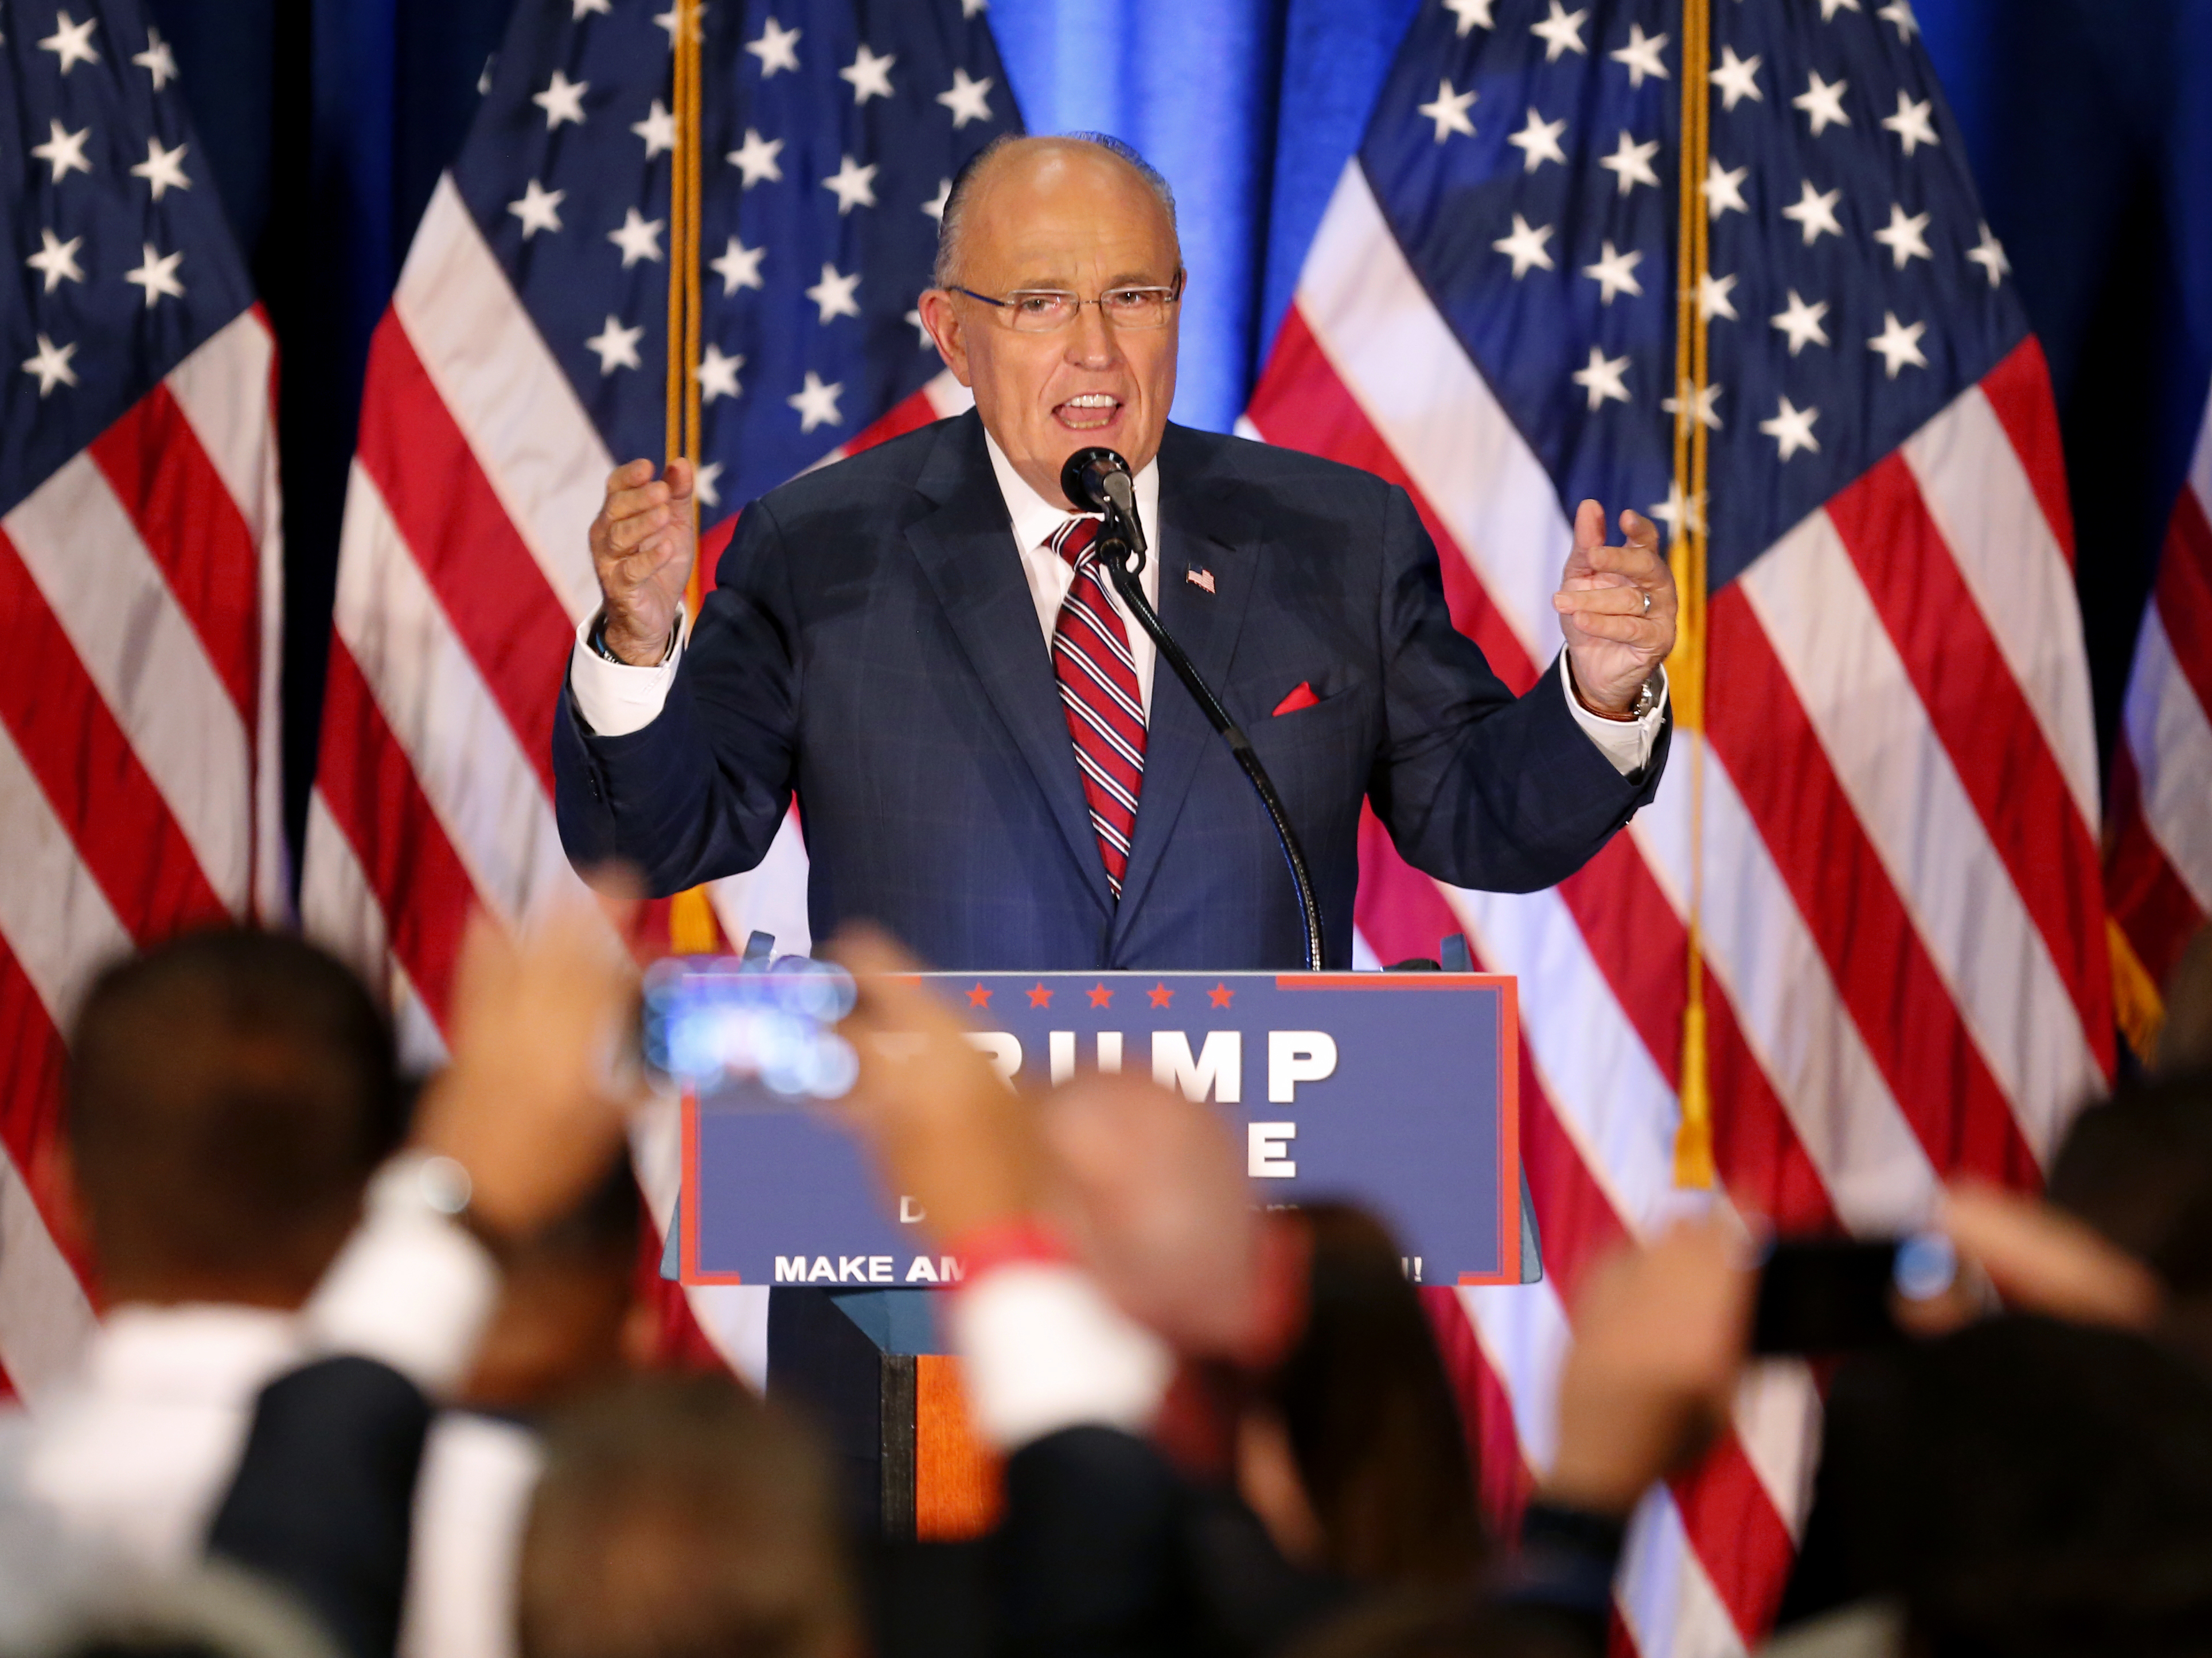 Former New York Mayor Rudolph Giuliani speaks before Republican presidential candidate Donald Trump in Youngstown, Ohio, on Monday.